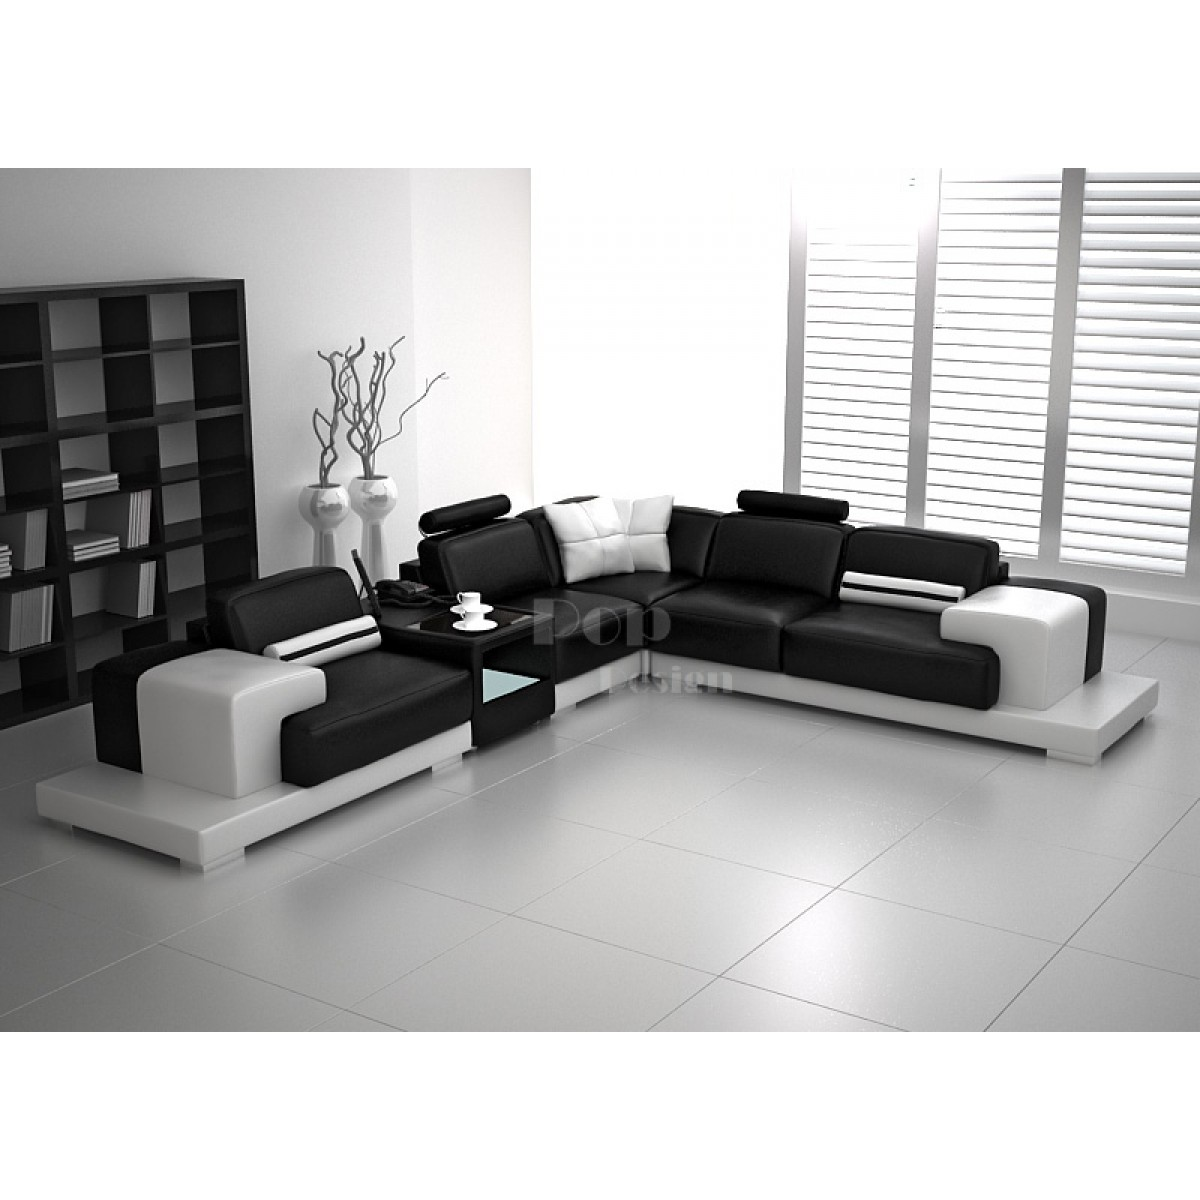 plus de vues. Black Bedroom Furniture Sets. Home Design Ideas